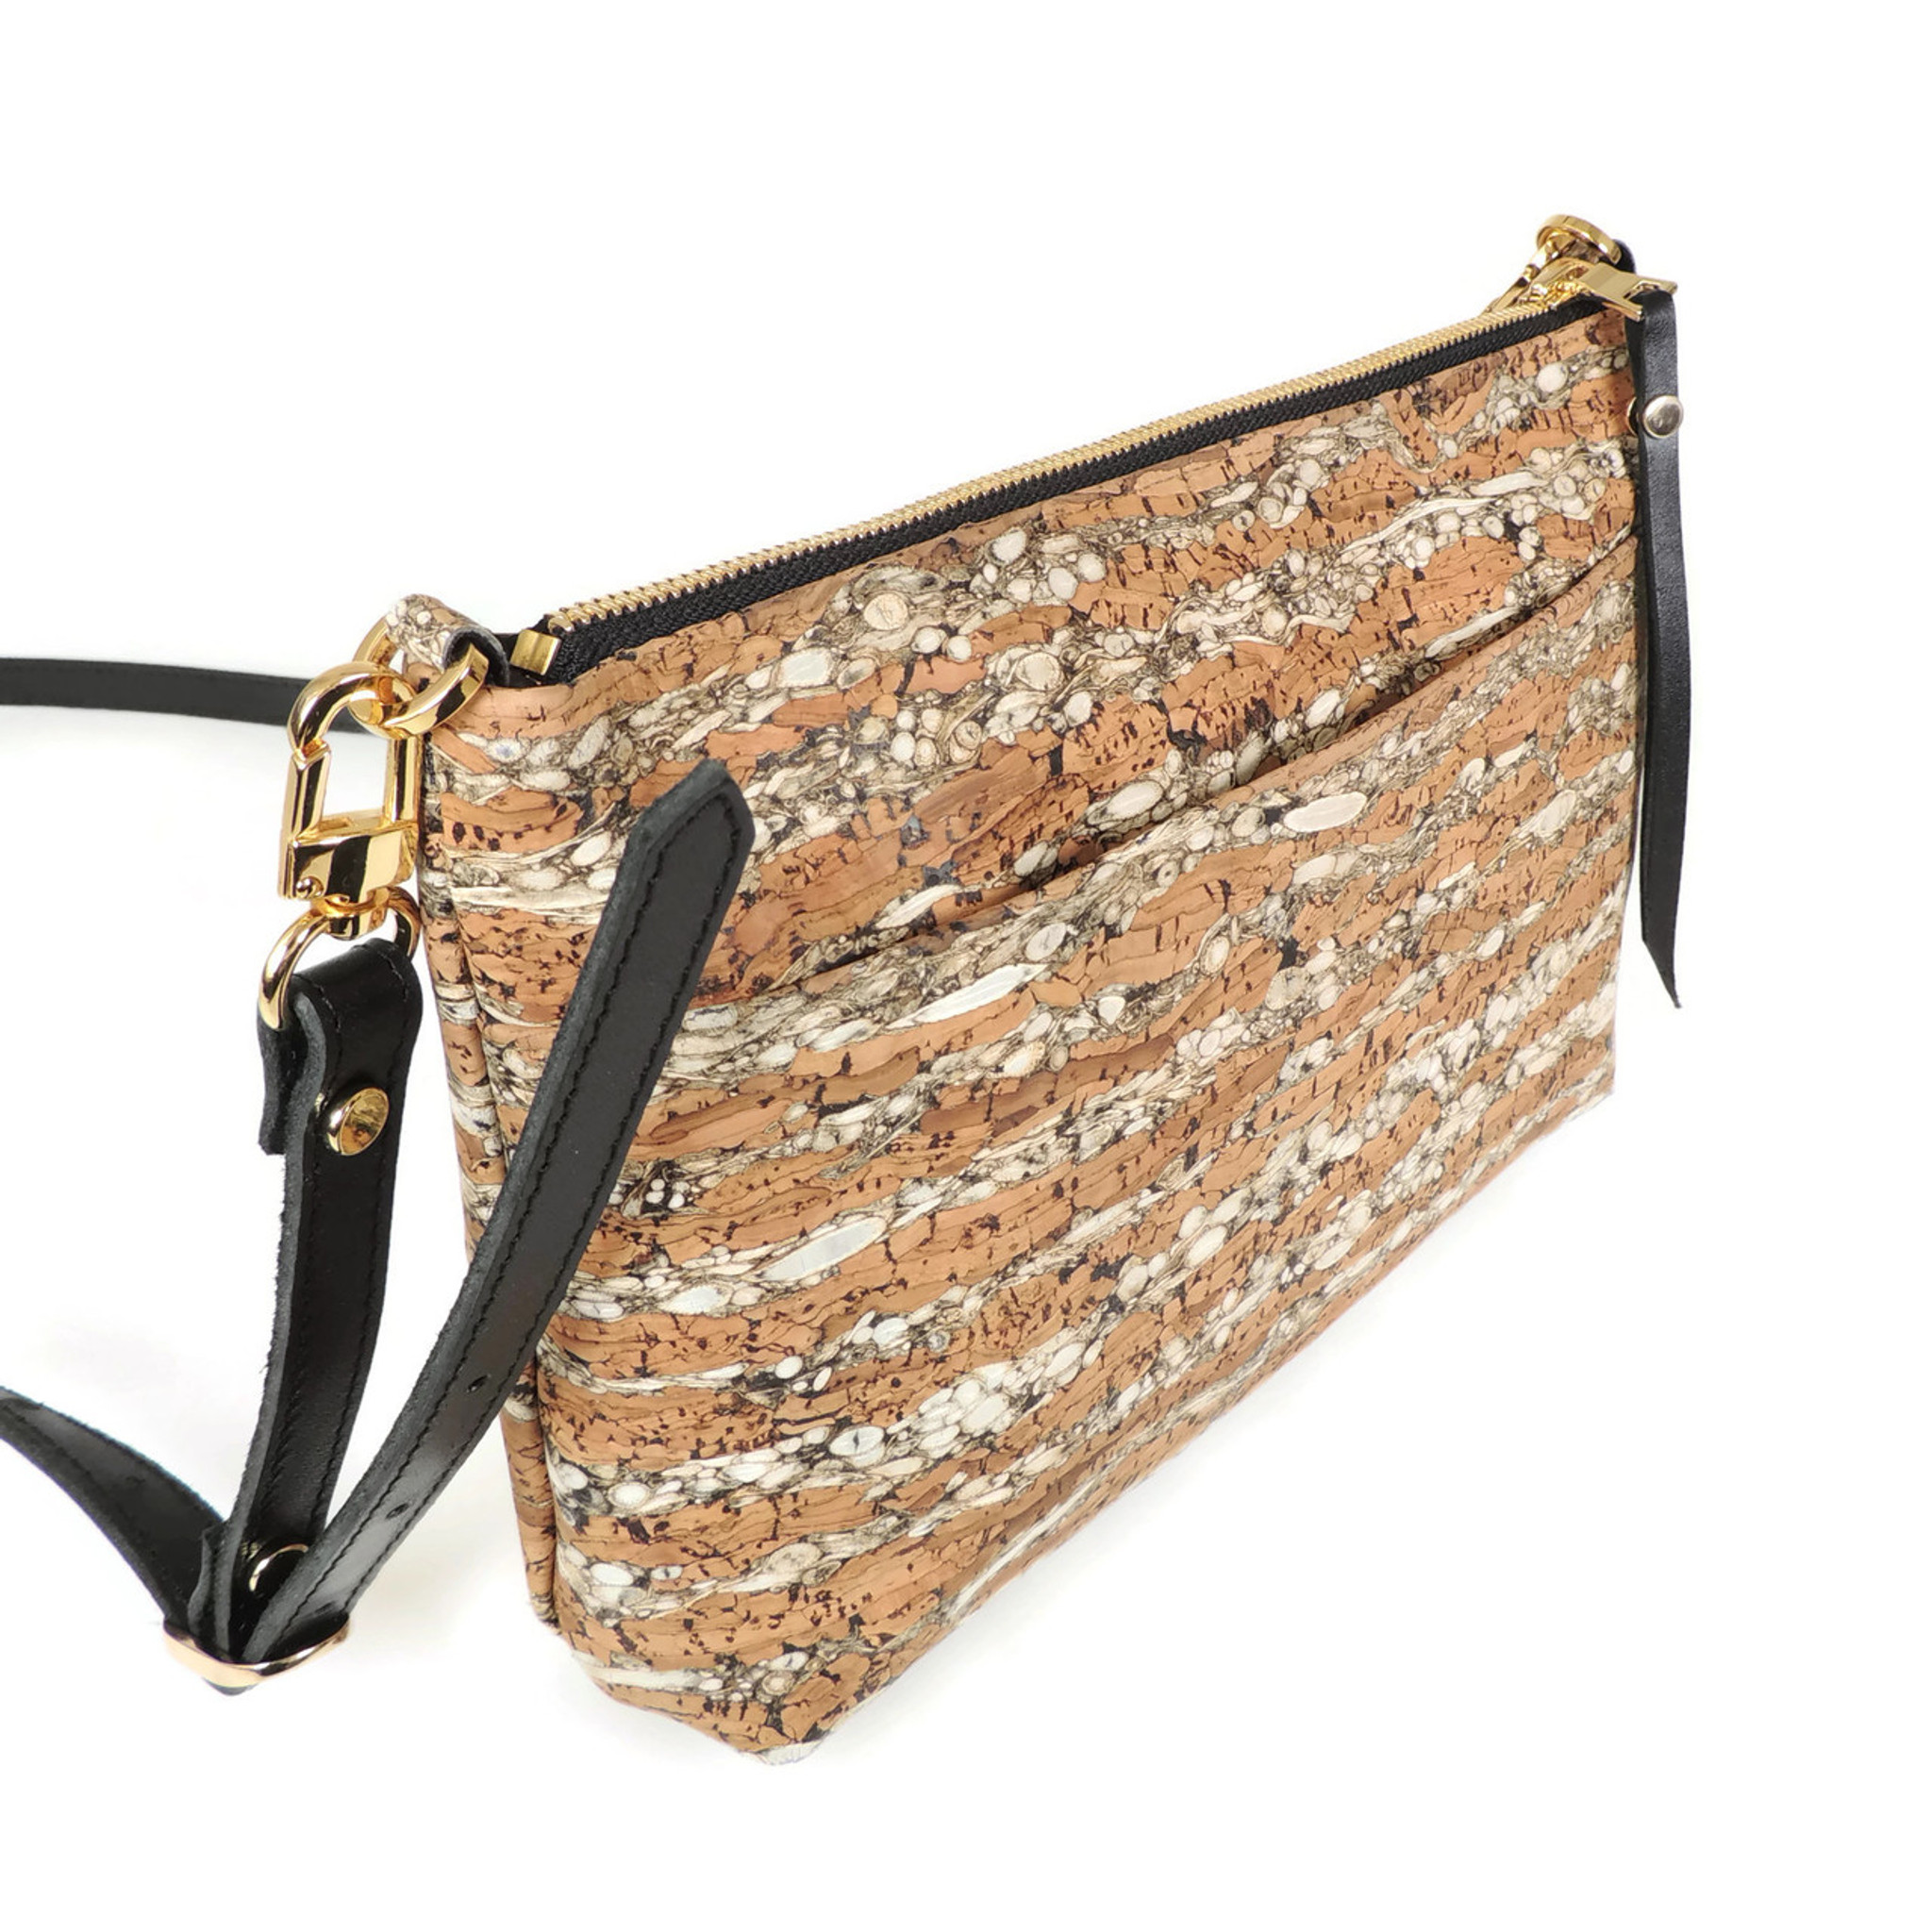 Crossbody Purse in Fennel Cork